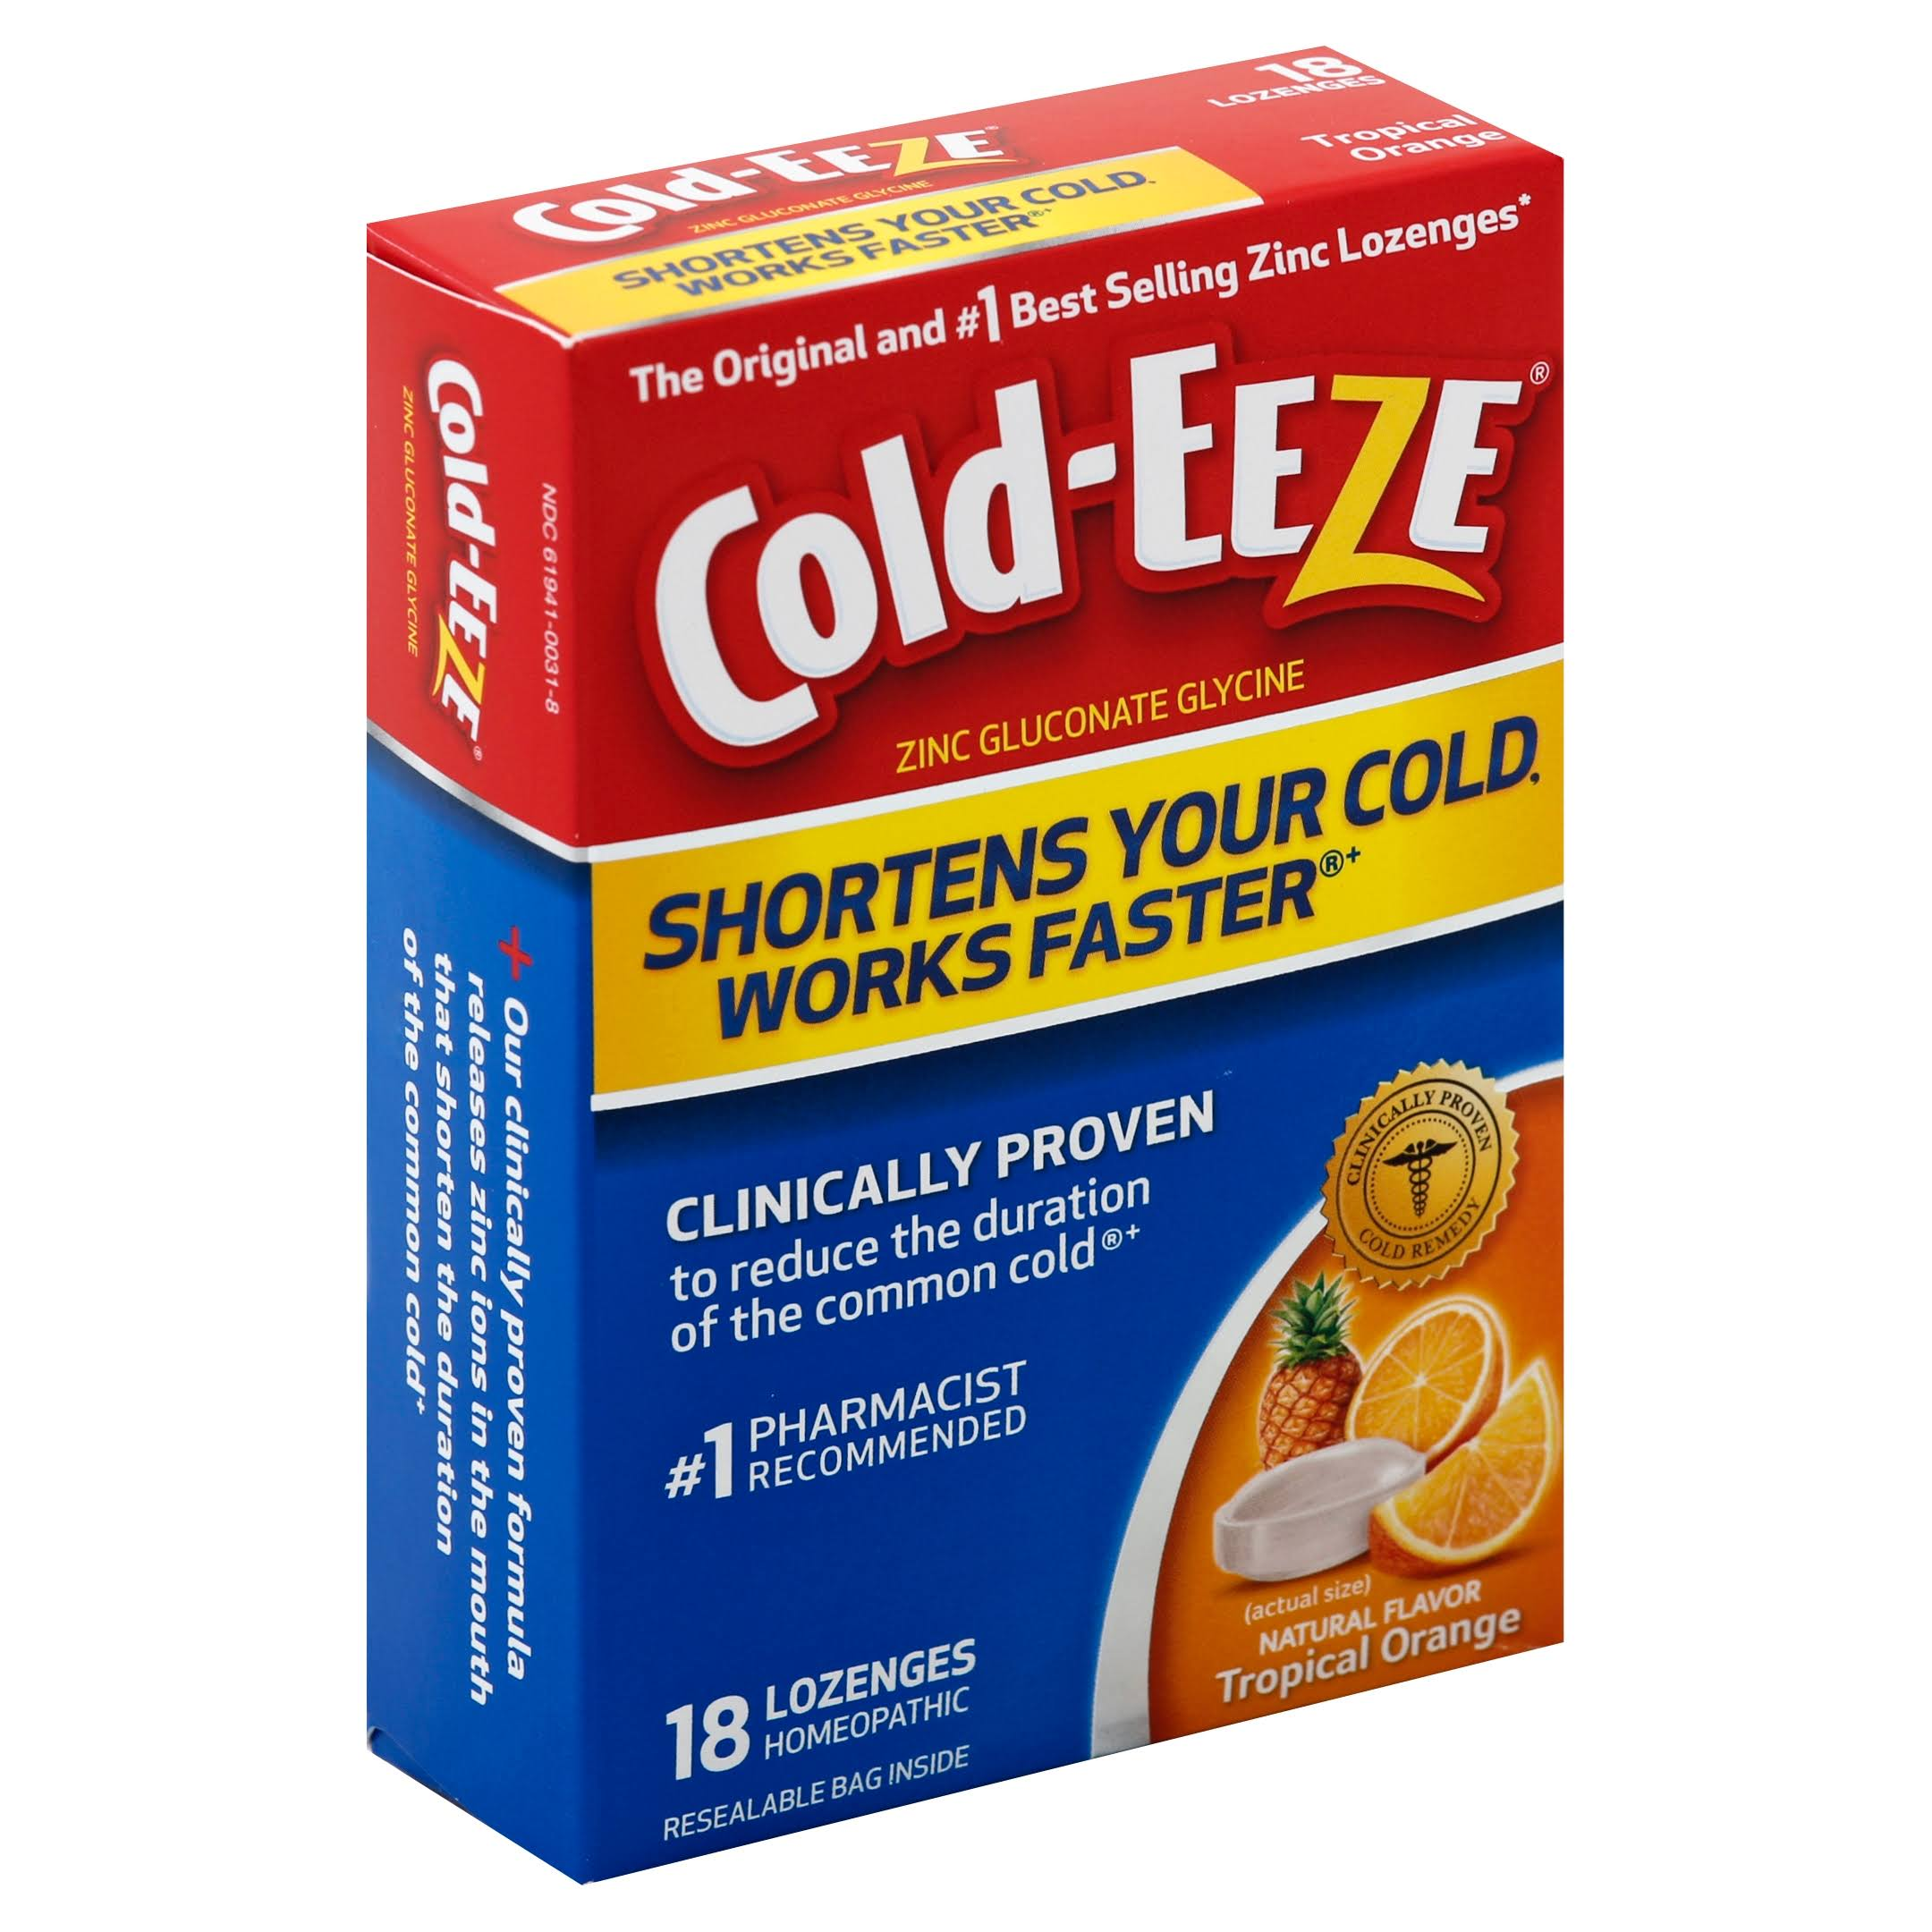 Cold Eeze Cold Remedy Lozenges - Tropical Orange, 18ct